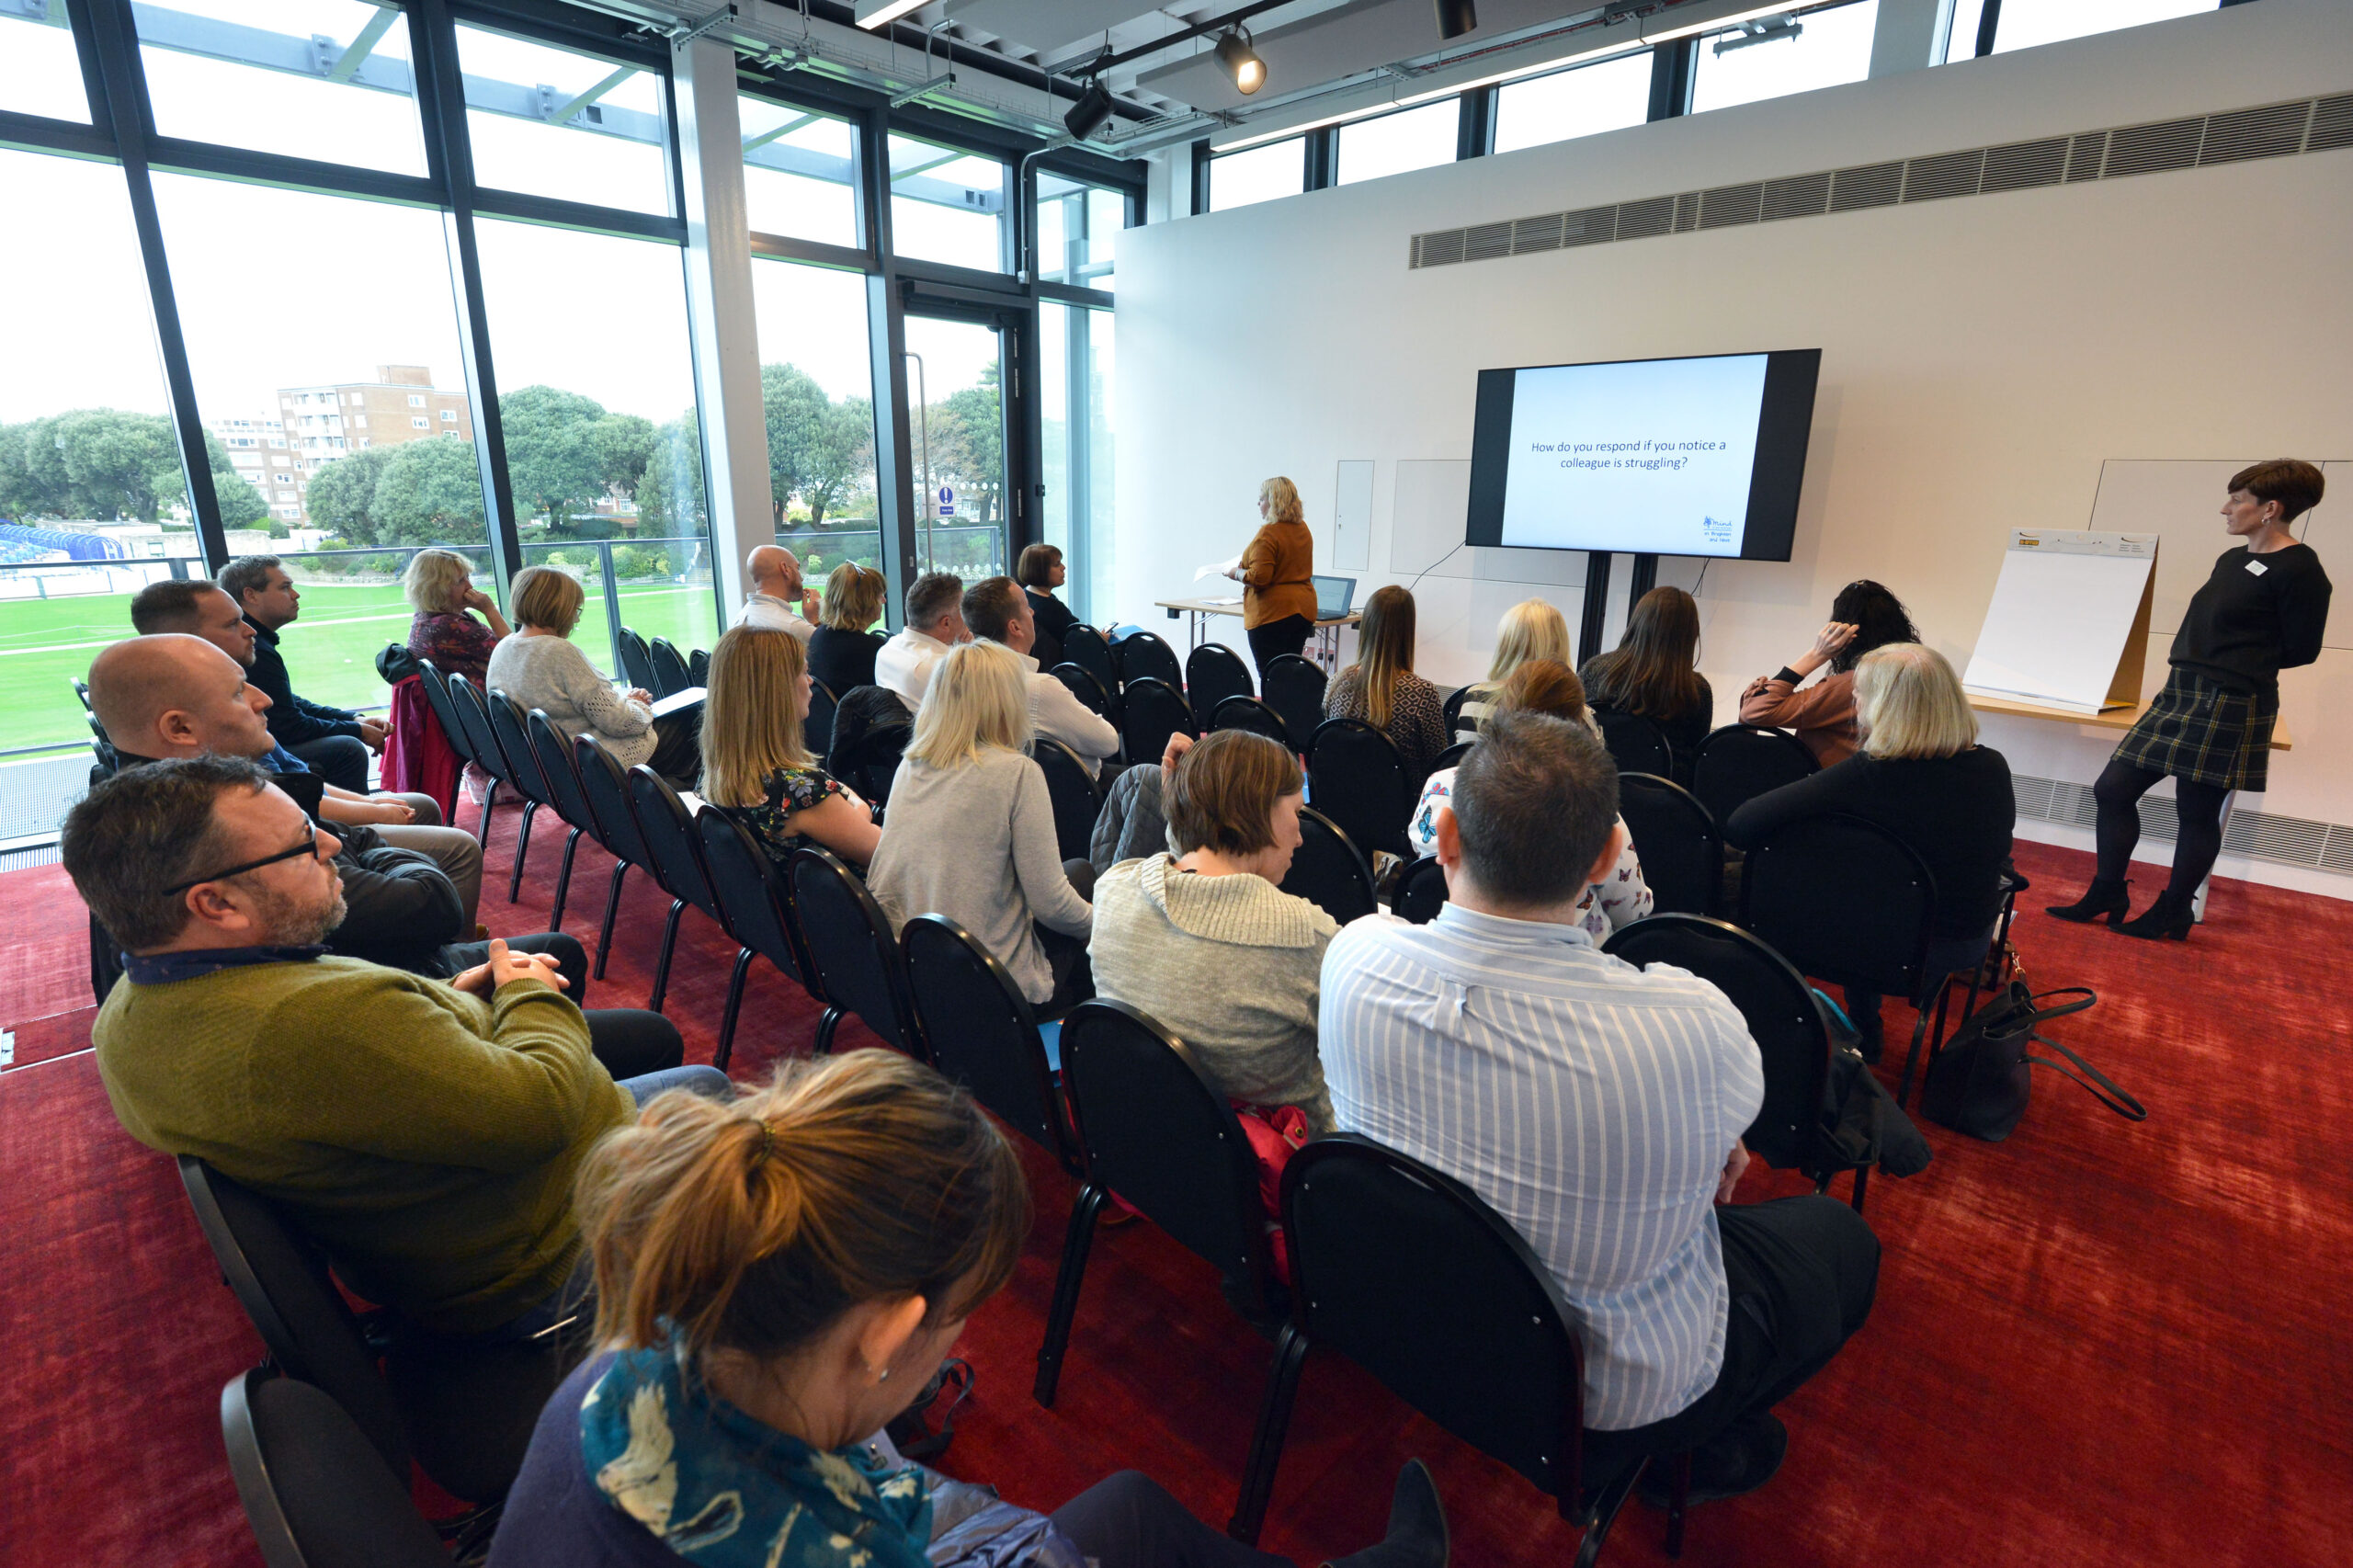 Photo of a conference room with participants looking at the presentation screen